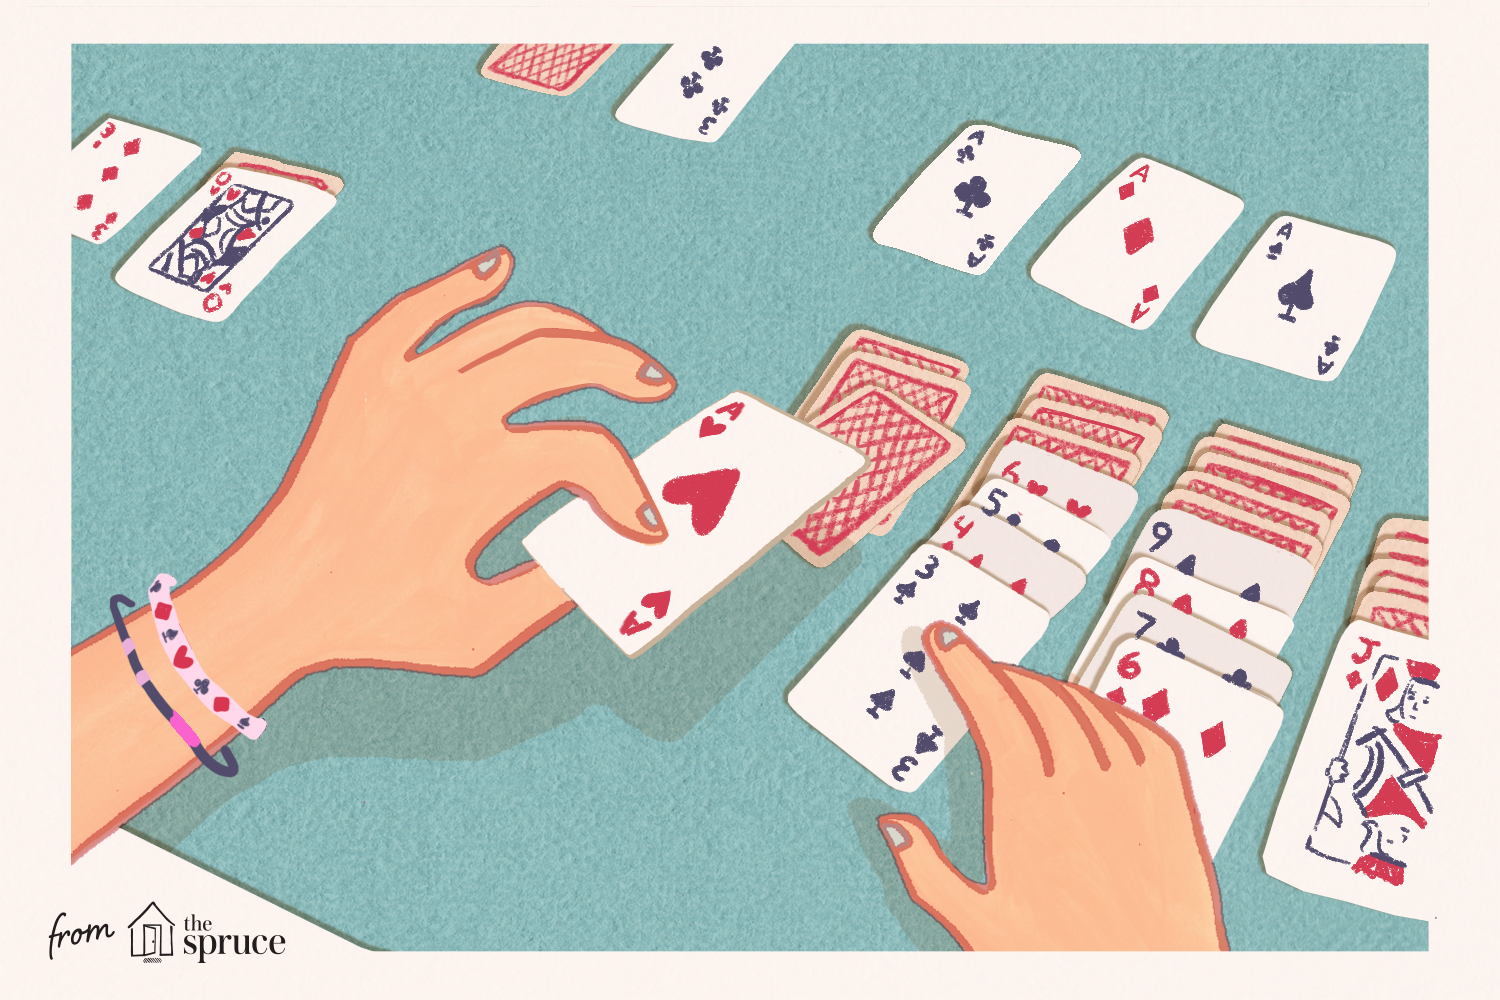 klondike-solitaire-card-game-rules-412473_FINAL.png